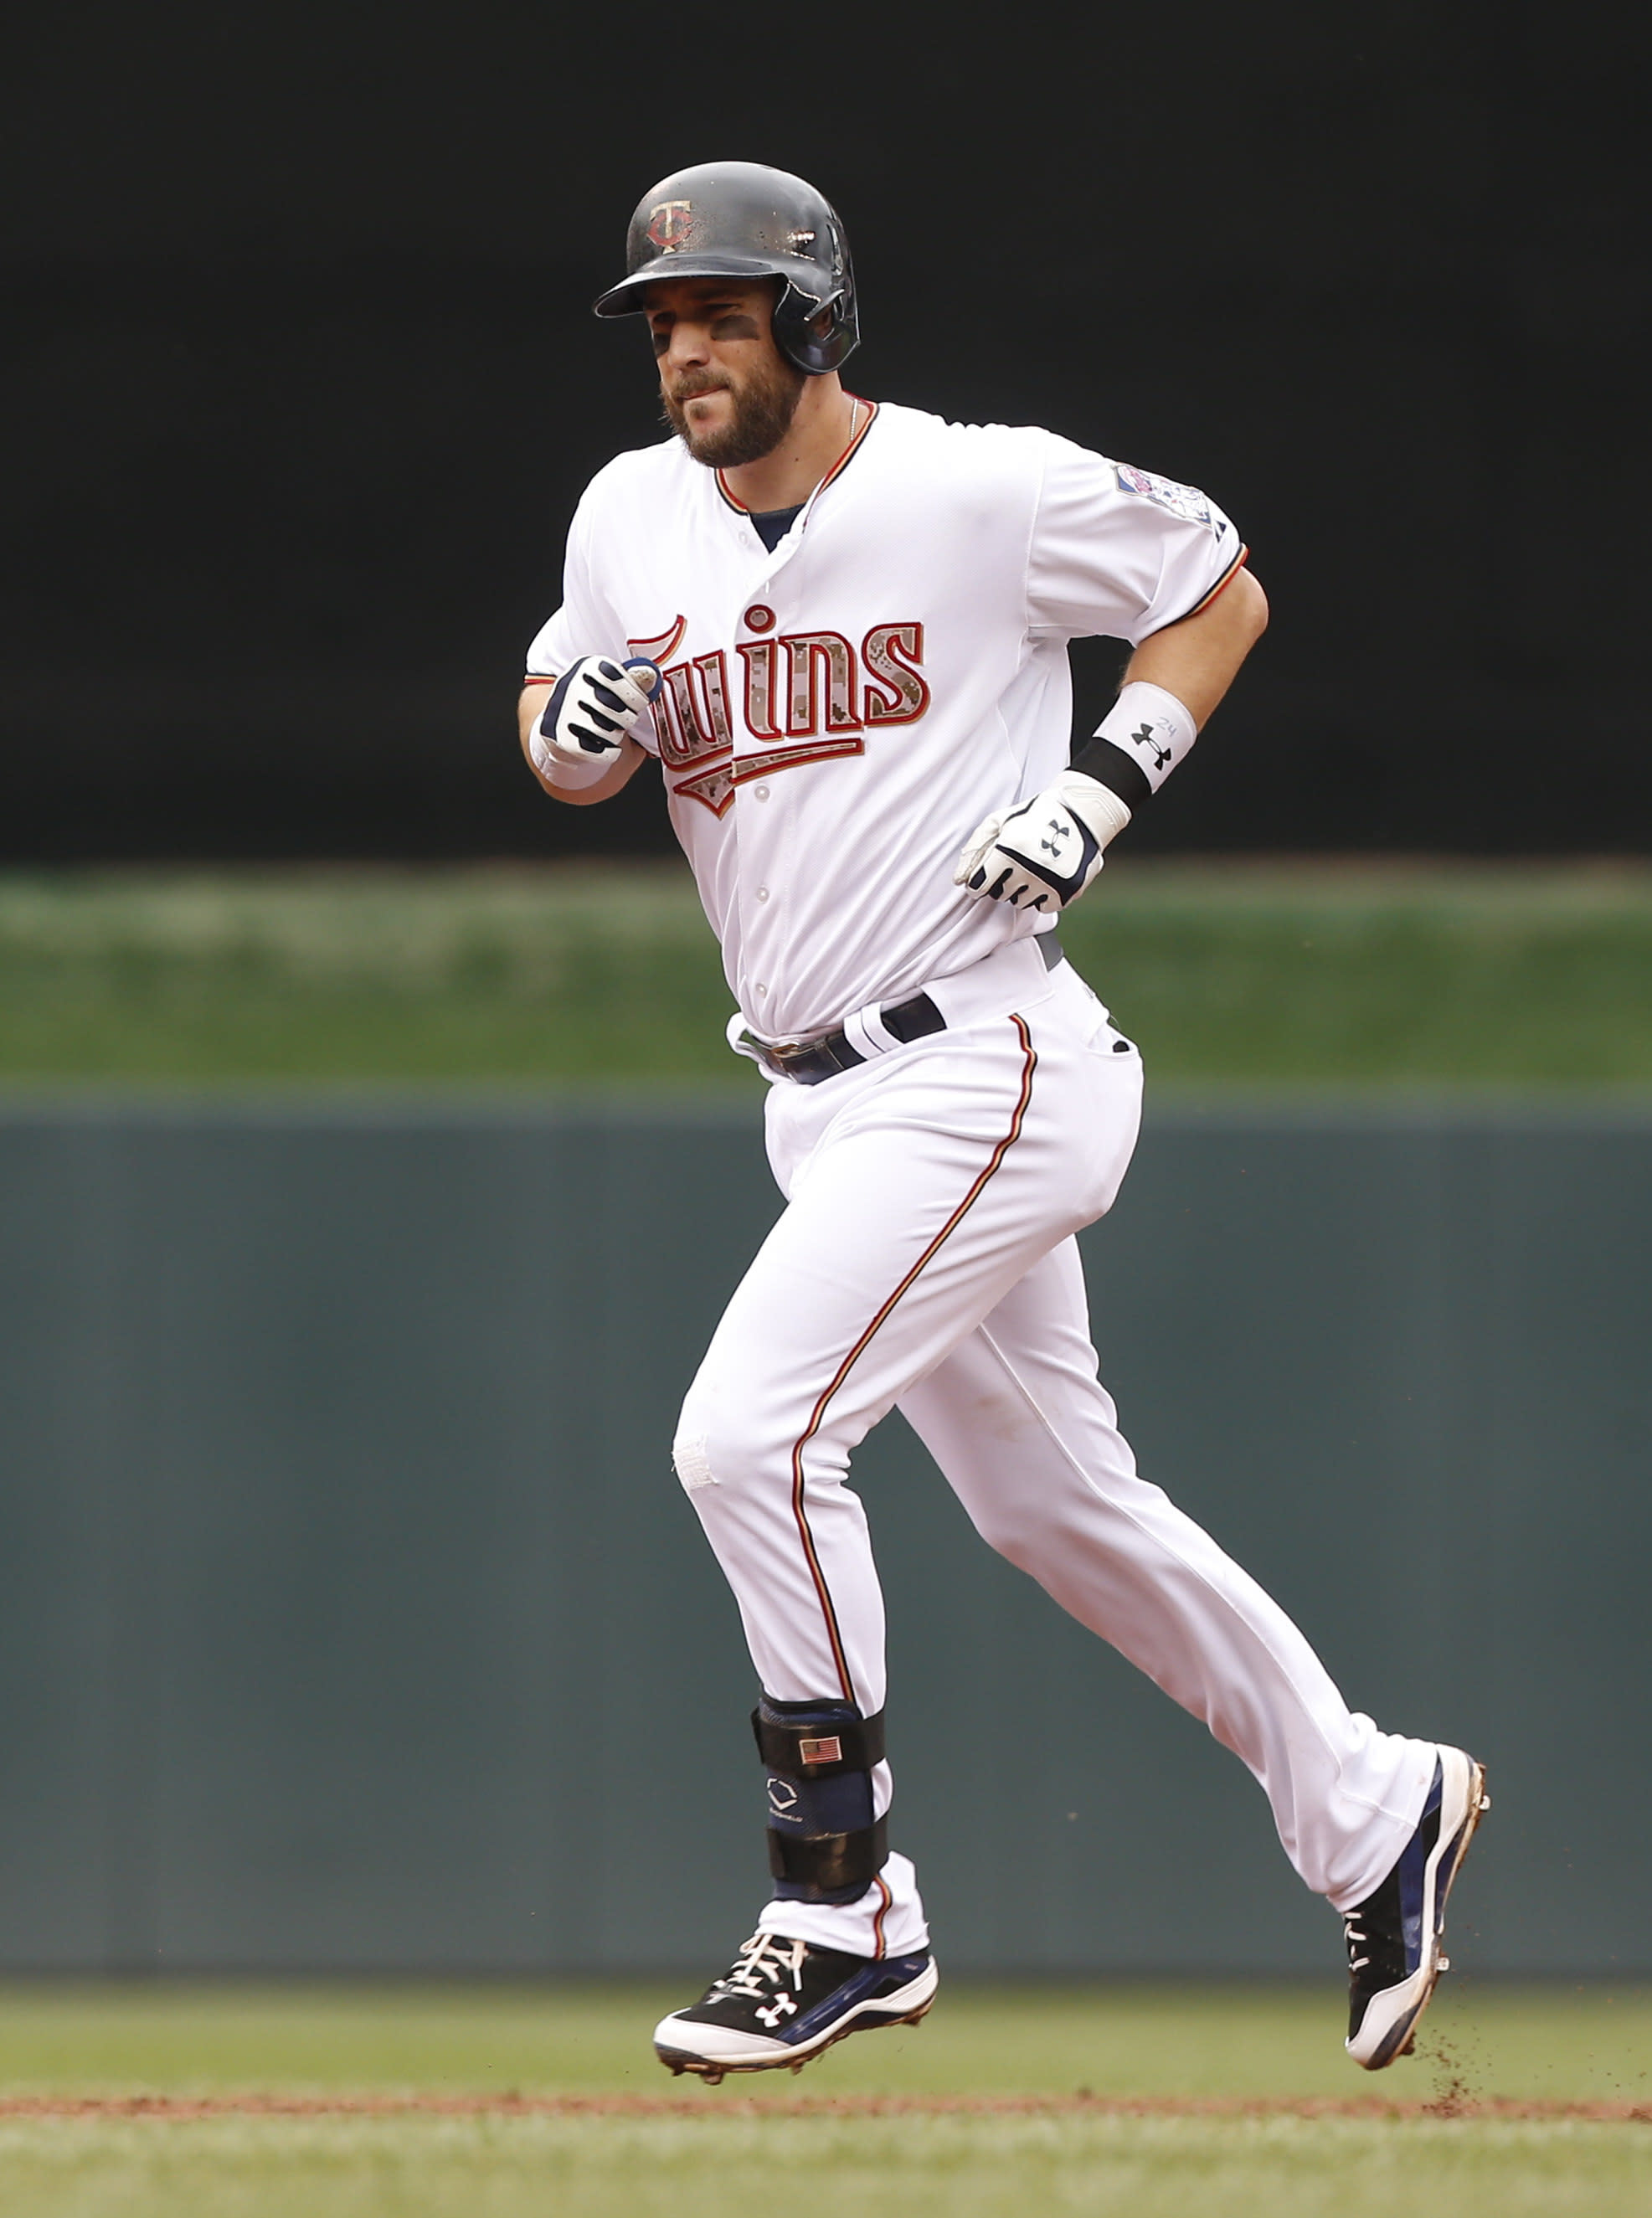 Nolasco, Plouffe help Twins stay hot in 7-2 win over Red Sox